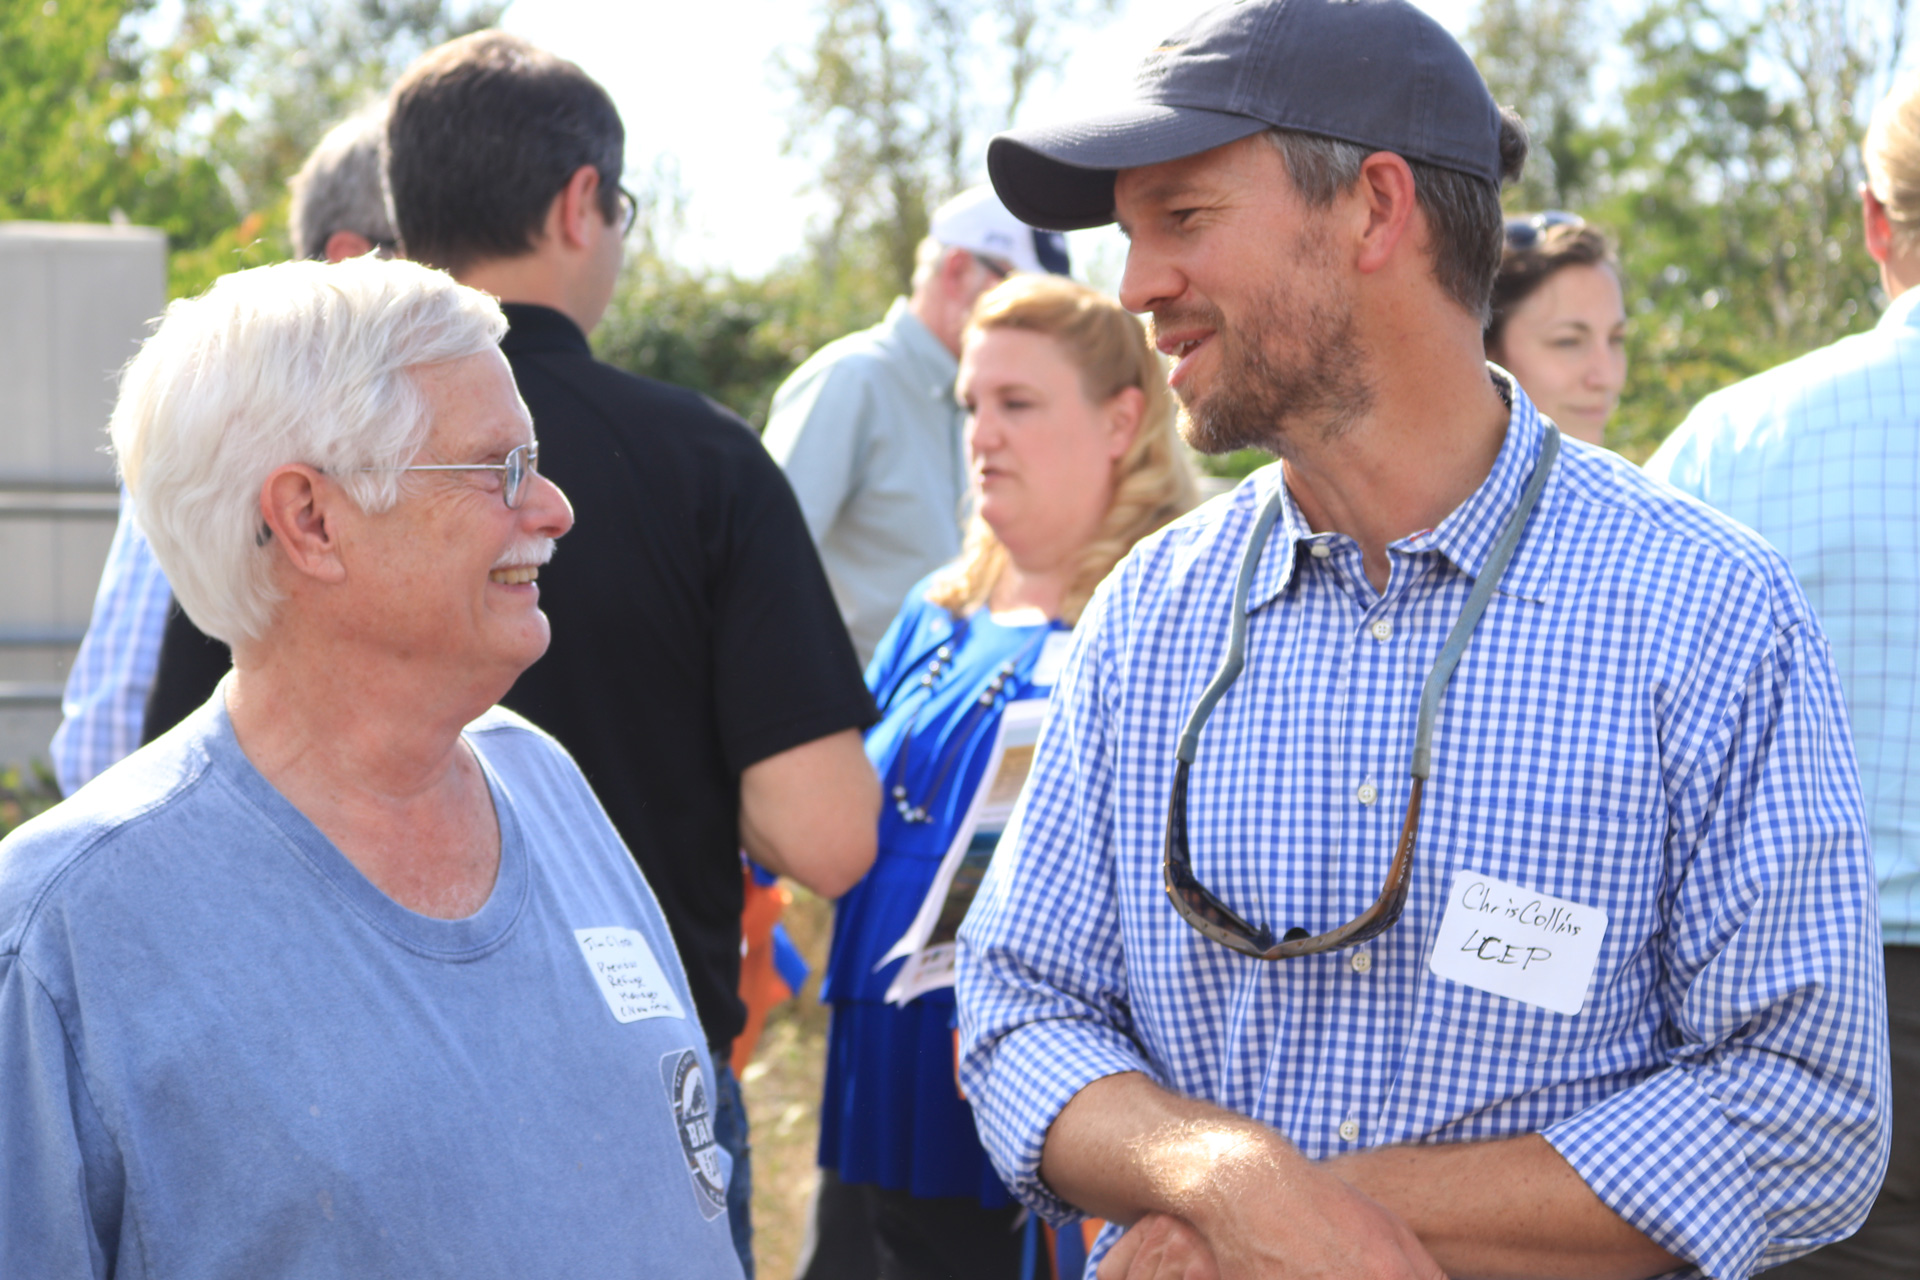 Former Steigerwald Lake Refuge Manager, Jim Clapp (left) was on hand for the groundbreaking of this 5+ year planning effort.